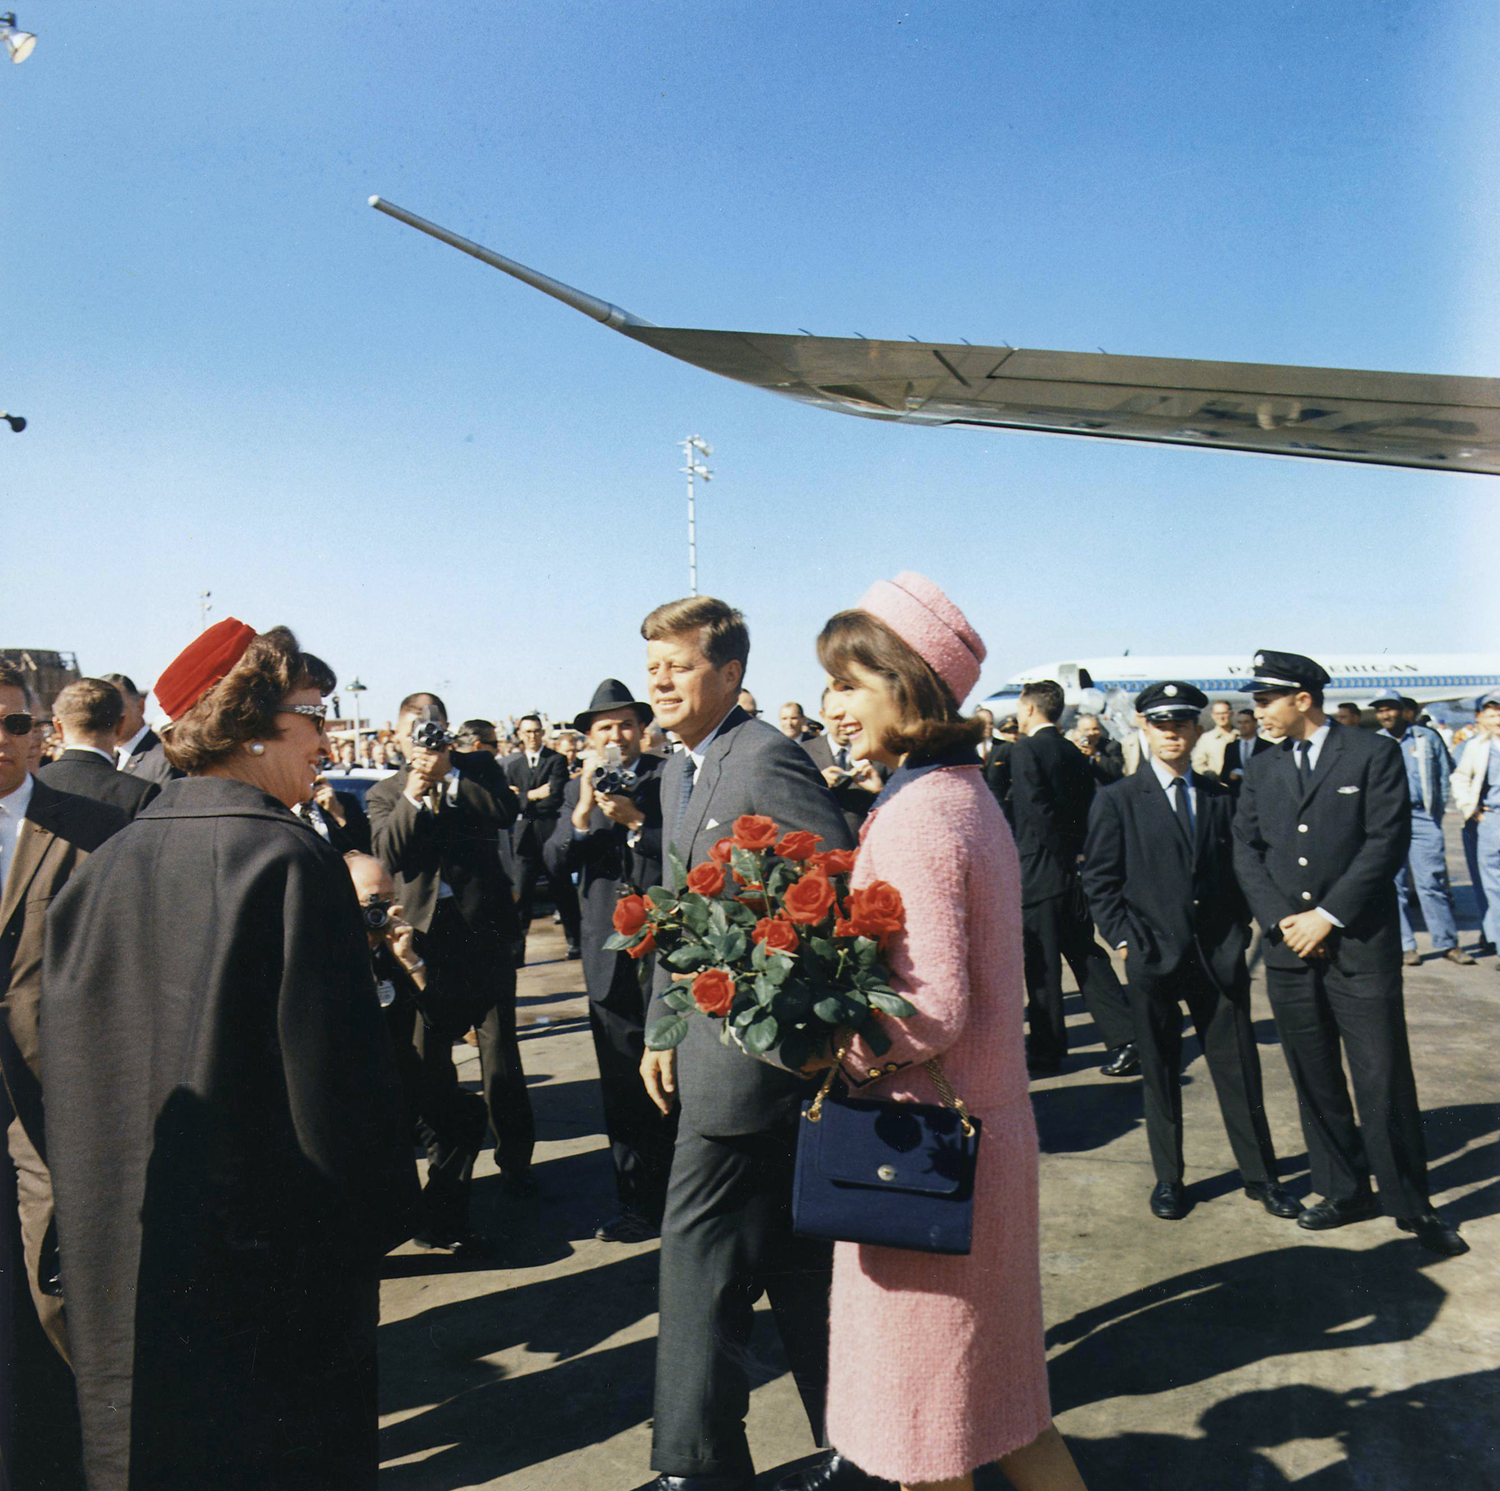 Kennedys-arrive-at-Dallas-November-22-1963